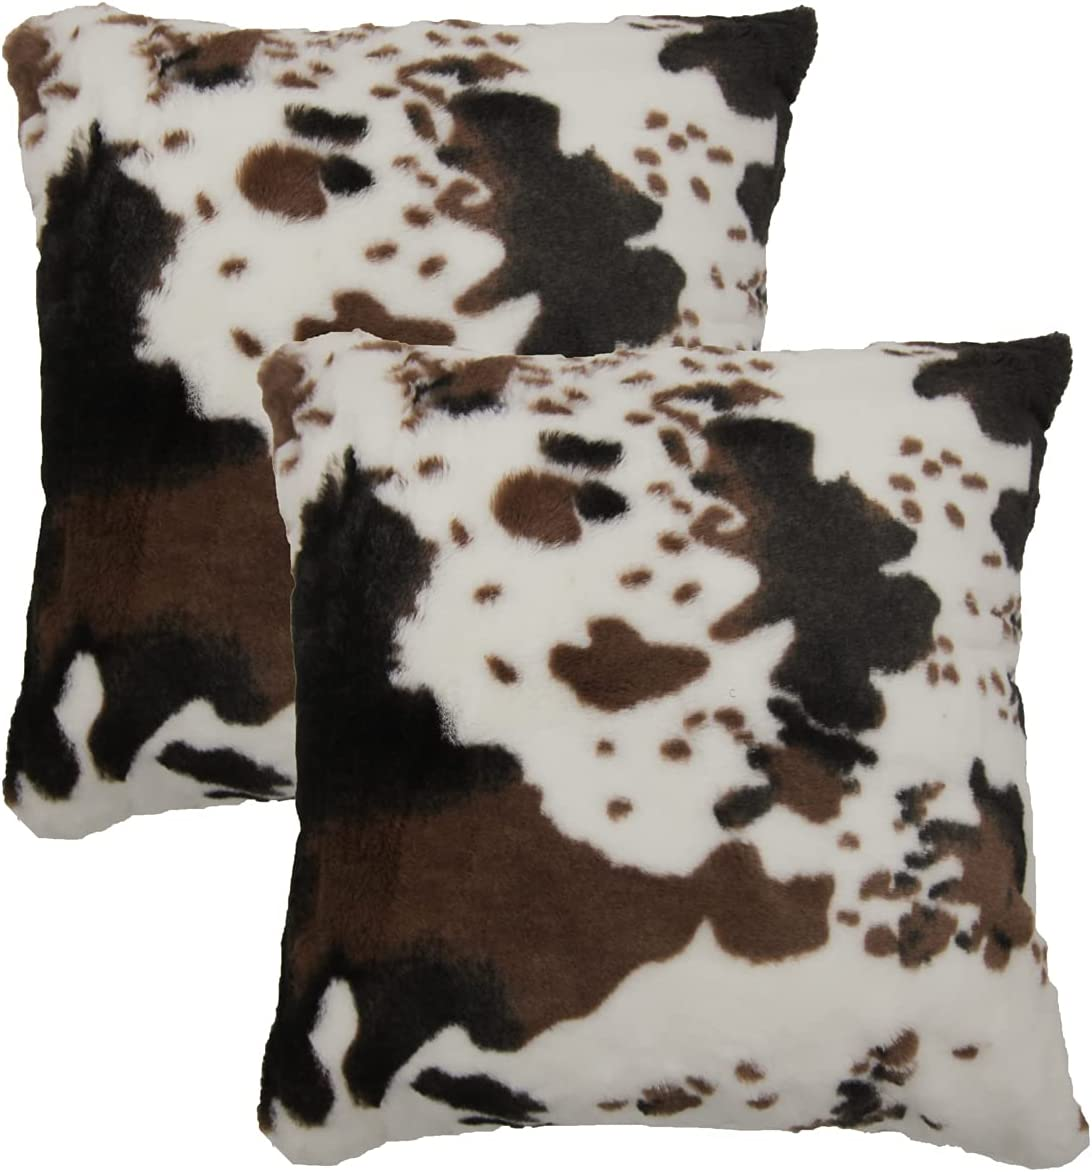 SWEET PIG Xynus Pack of 2 Cow Cowhide Fur Pillow Cover Throw Cases Animal Skin Farmhouse Decor Cozy 18x18 Inches